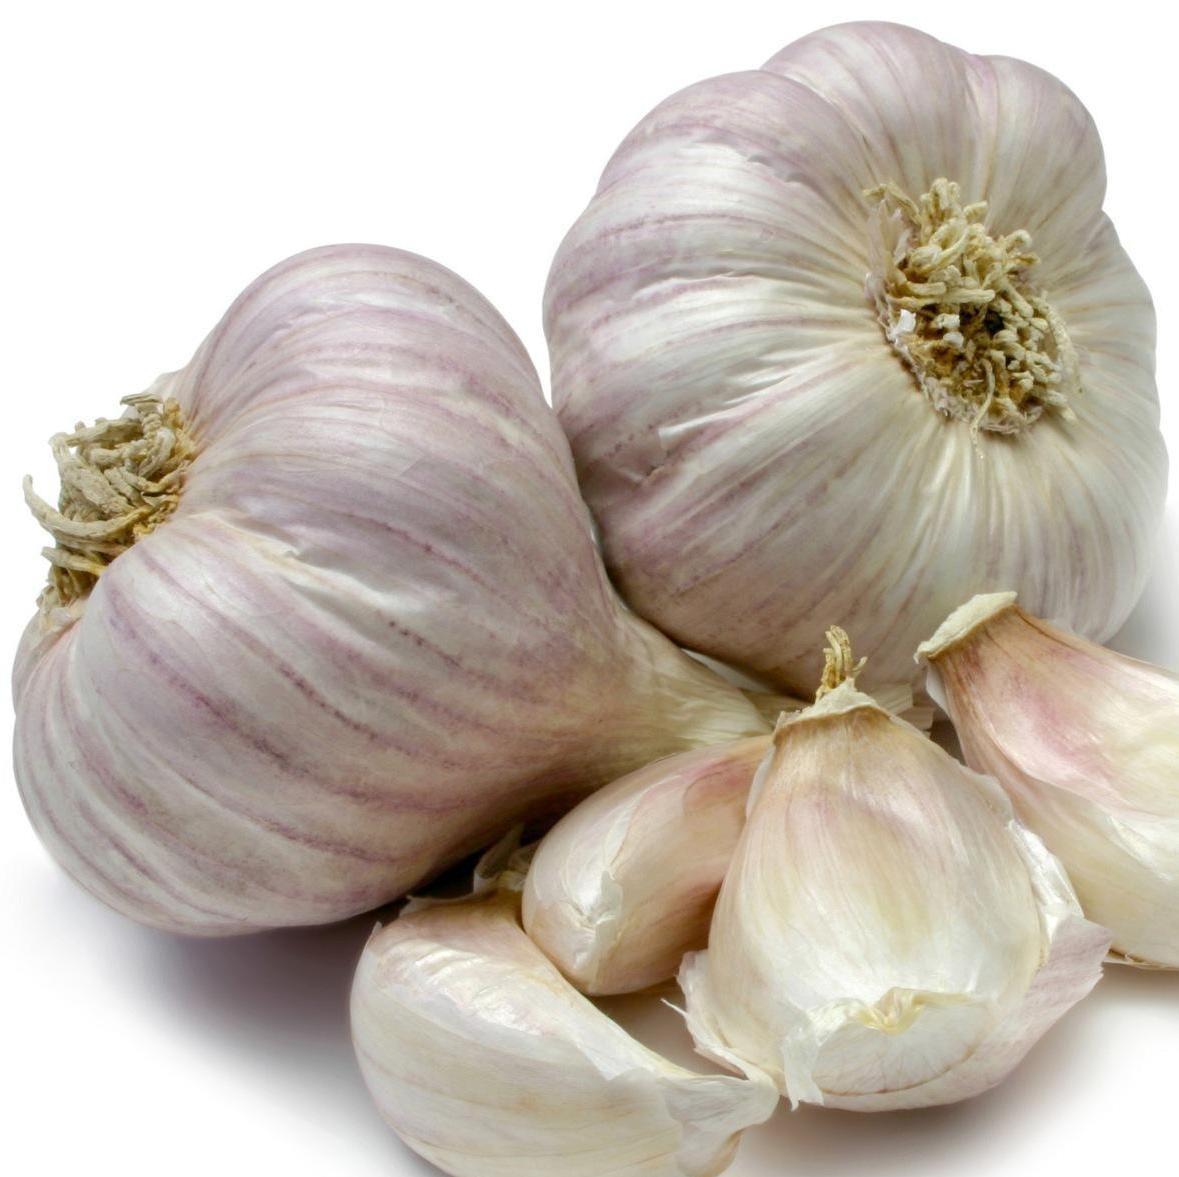 Does garlic lower cholesterol